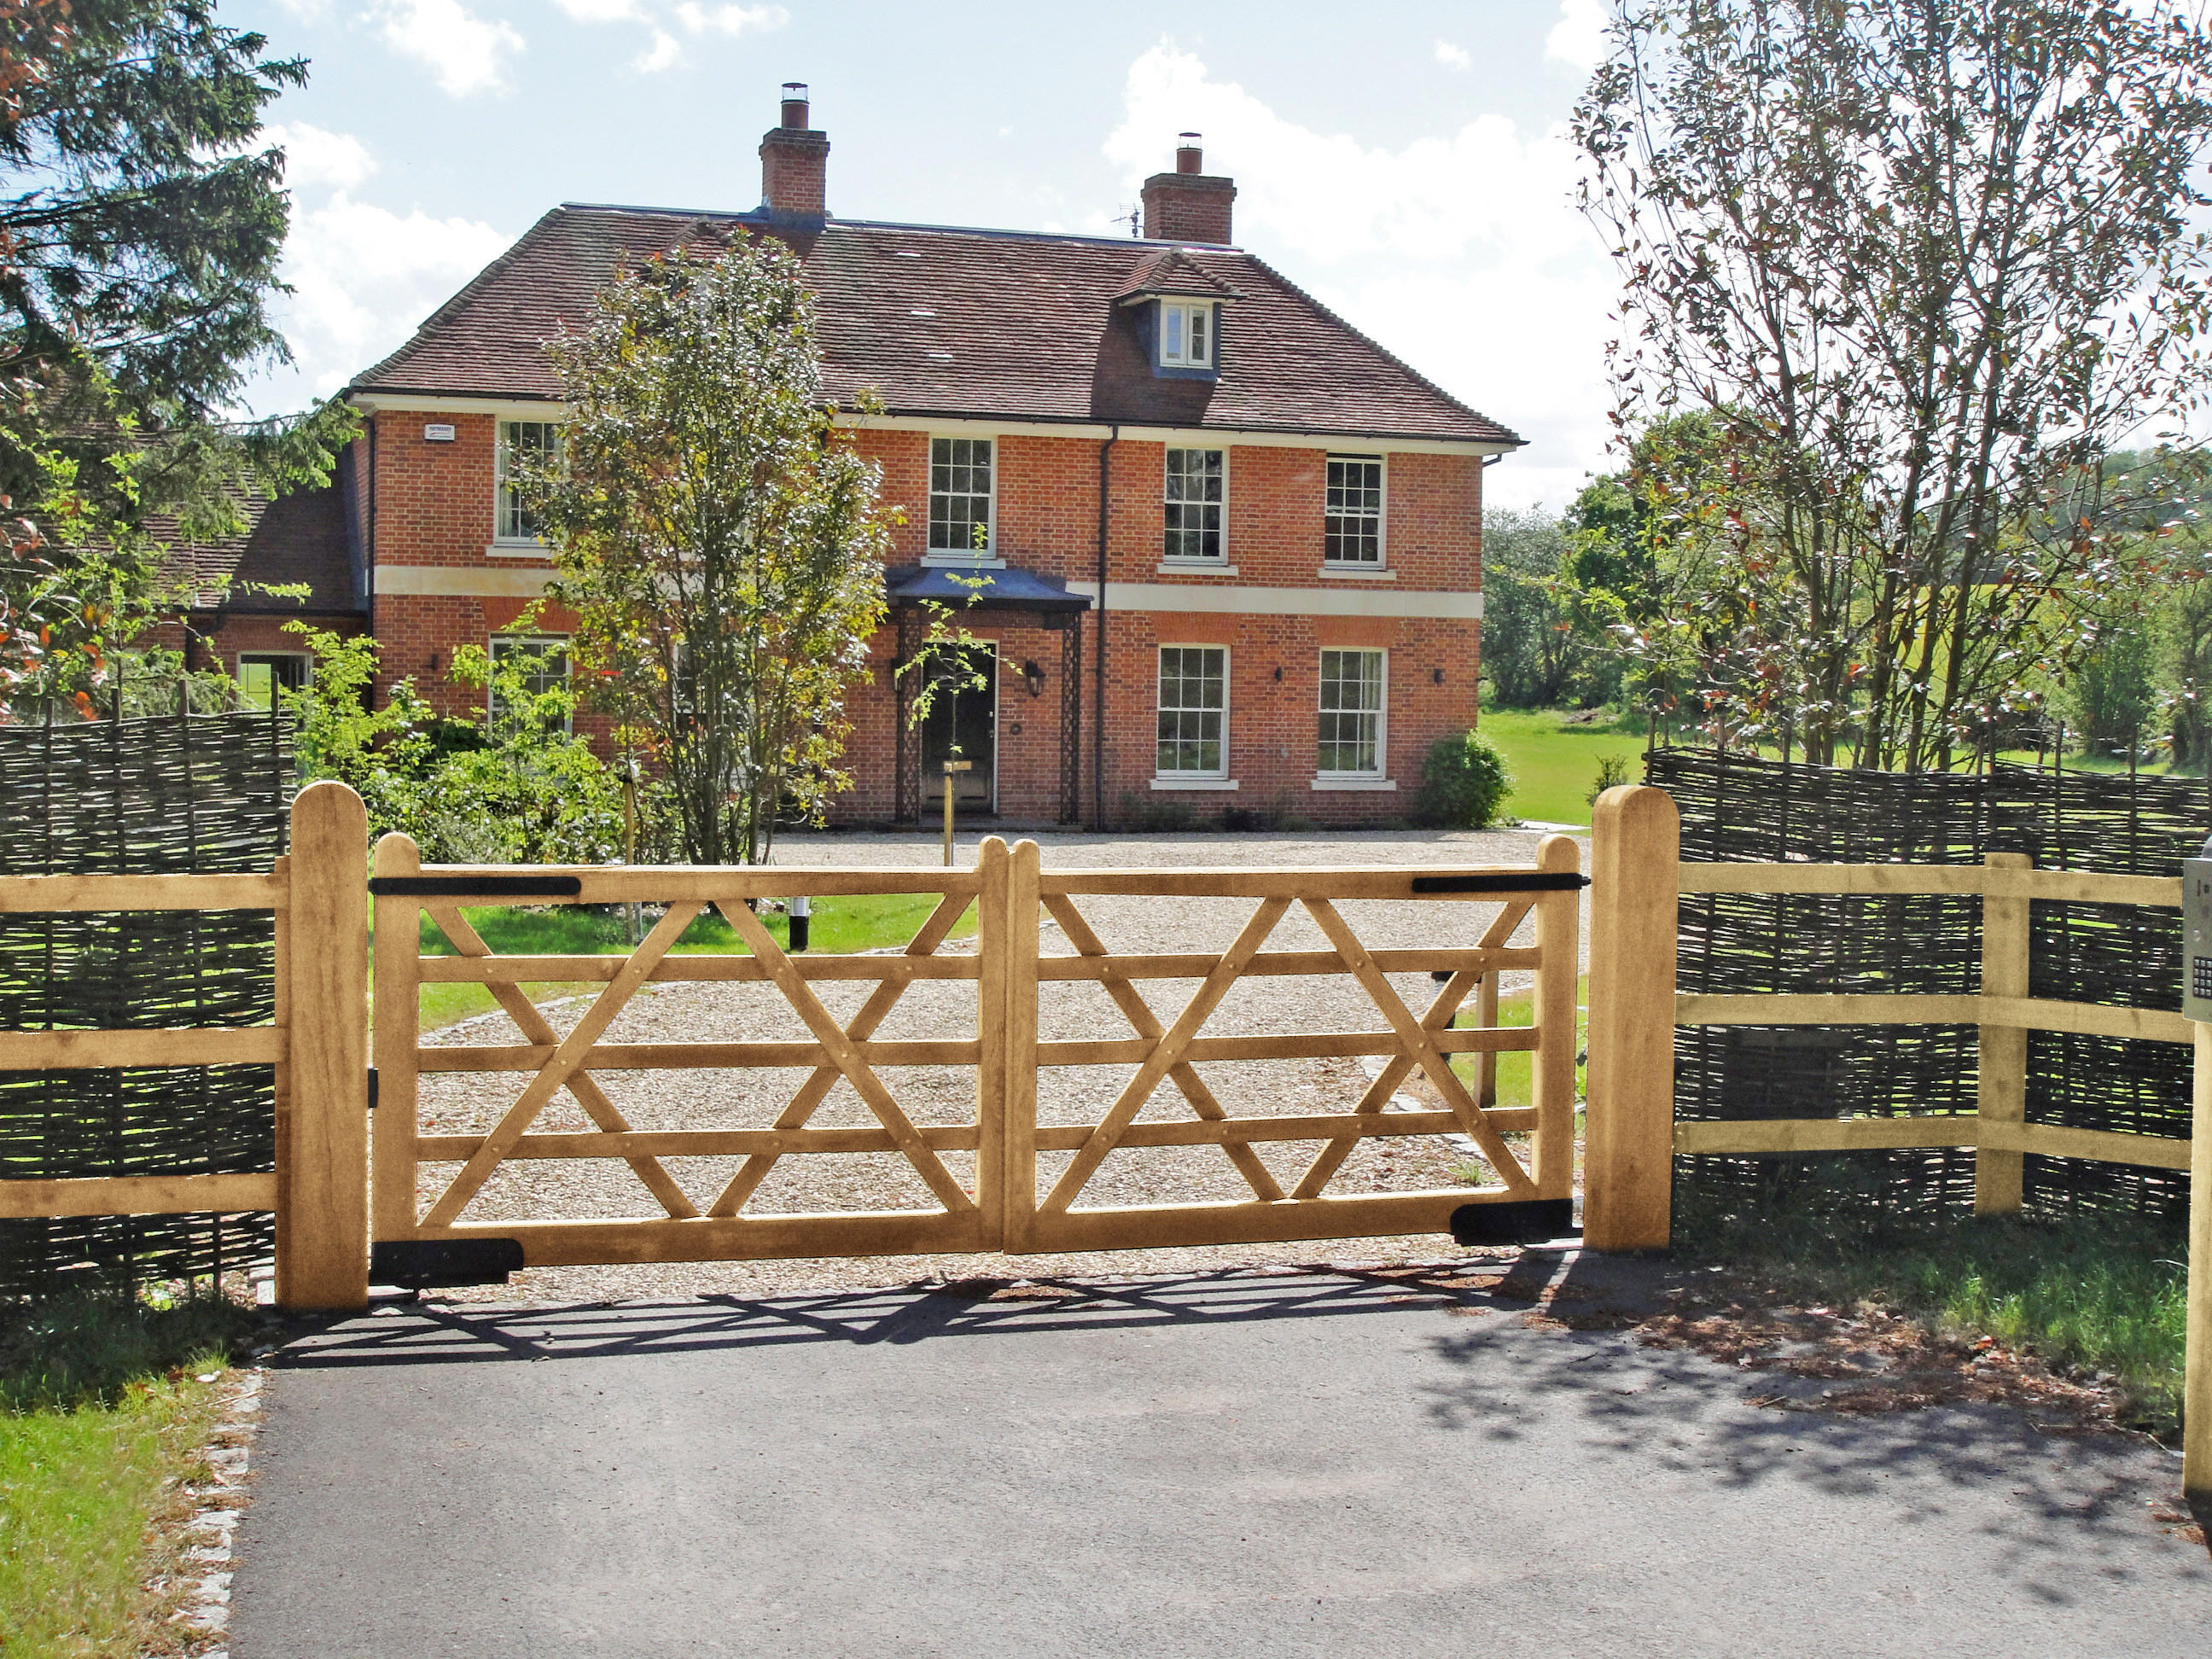 Ascot 5 bar wooden gates